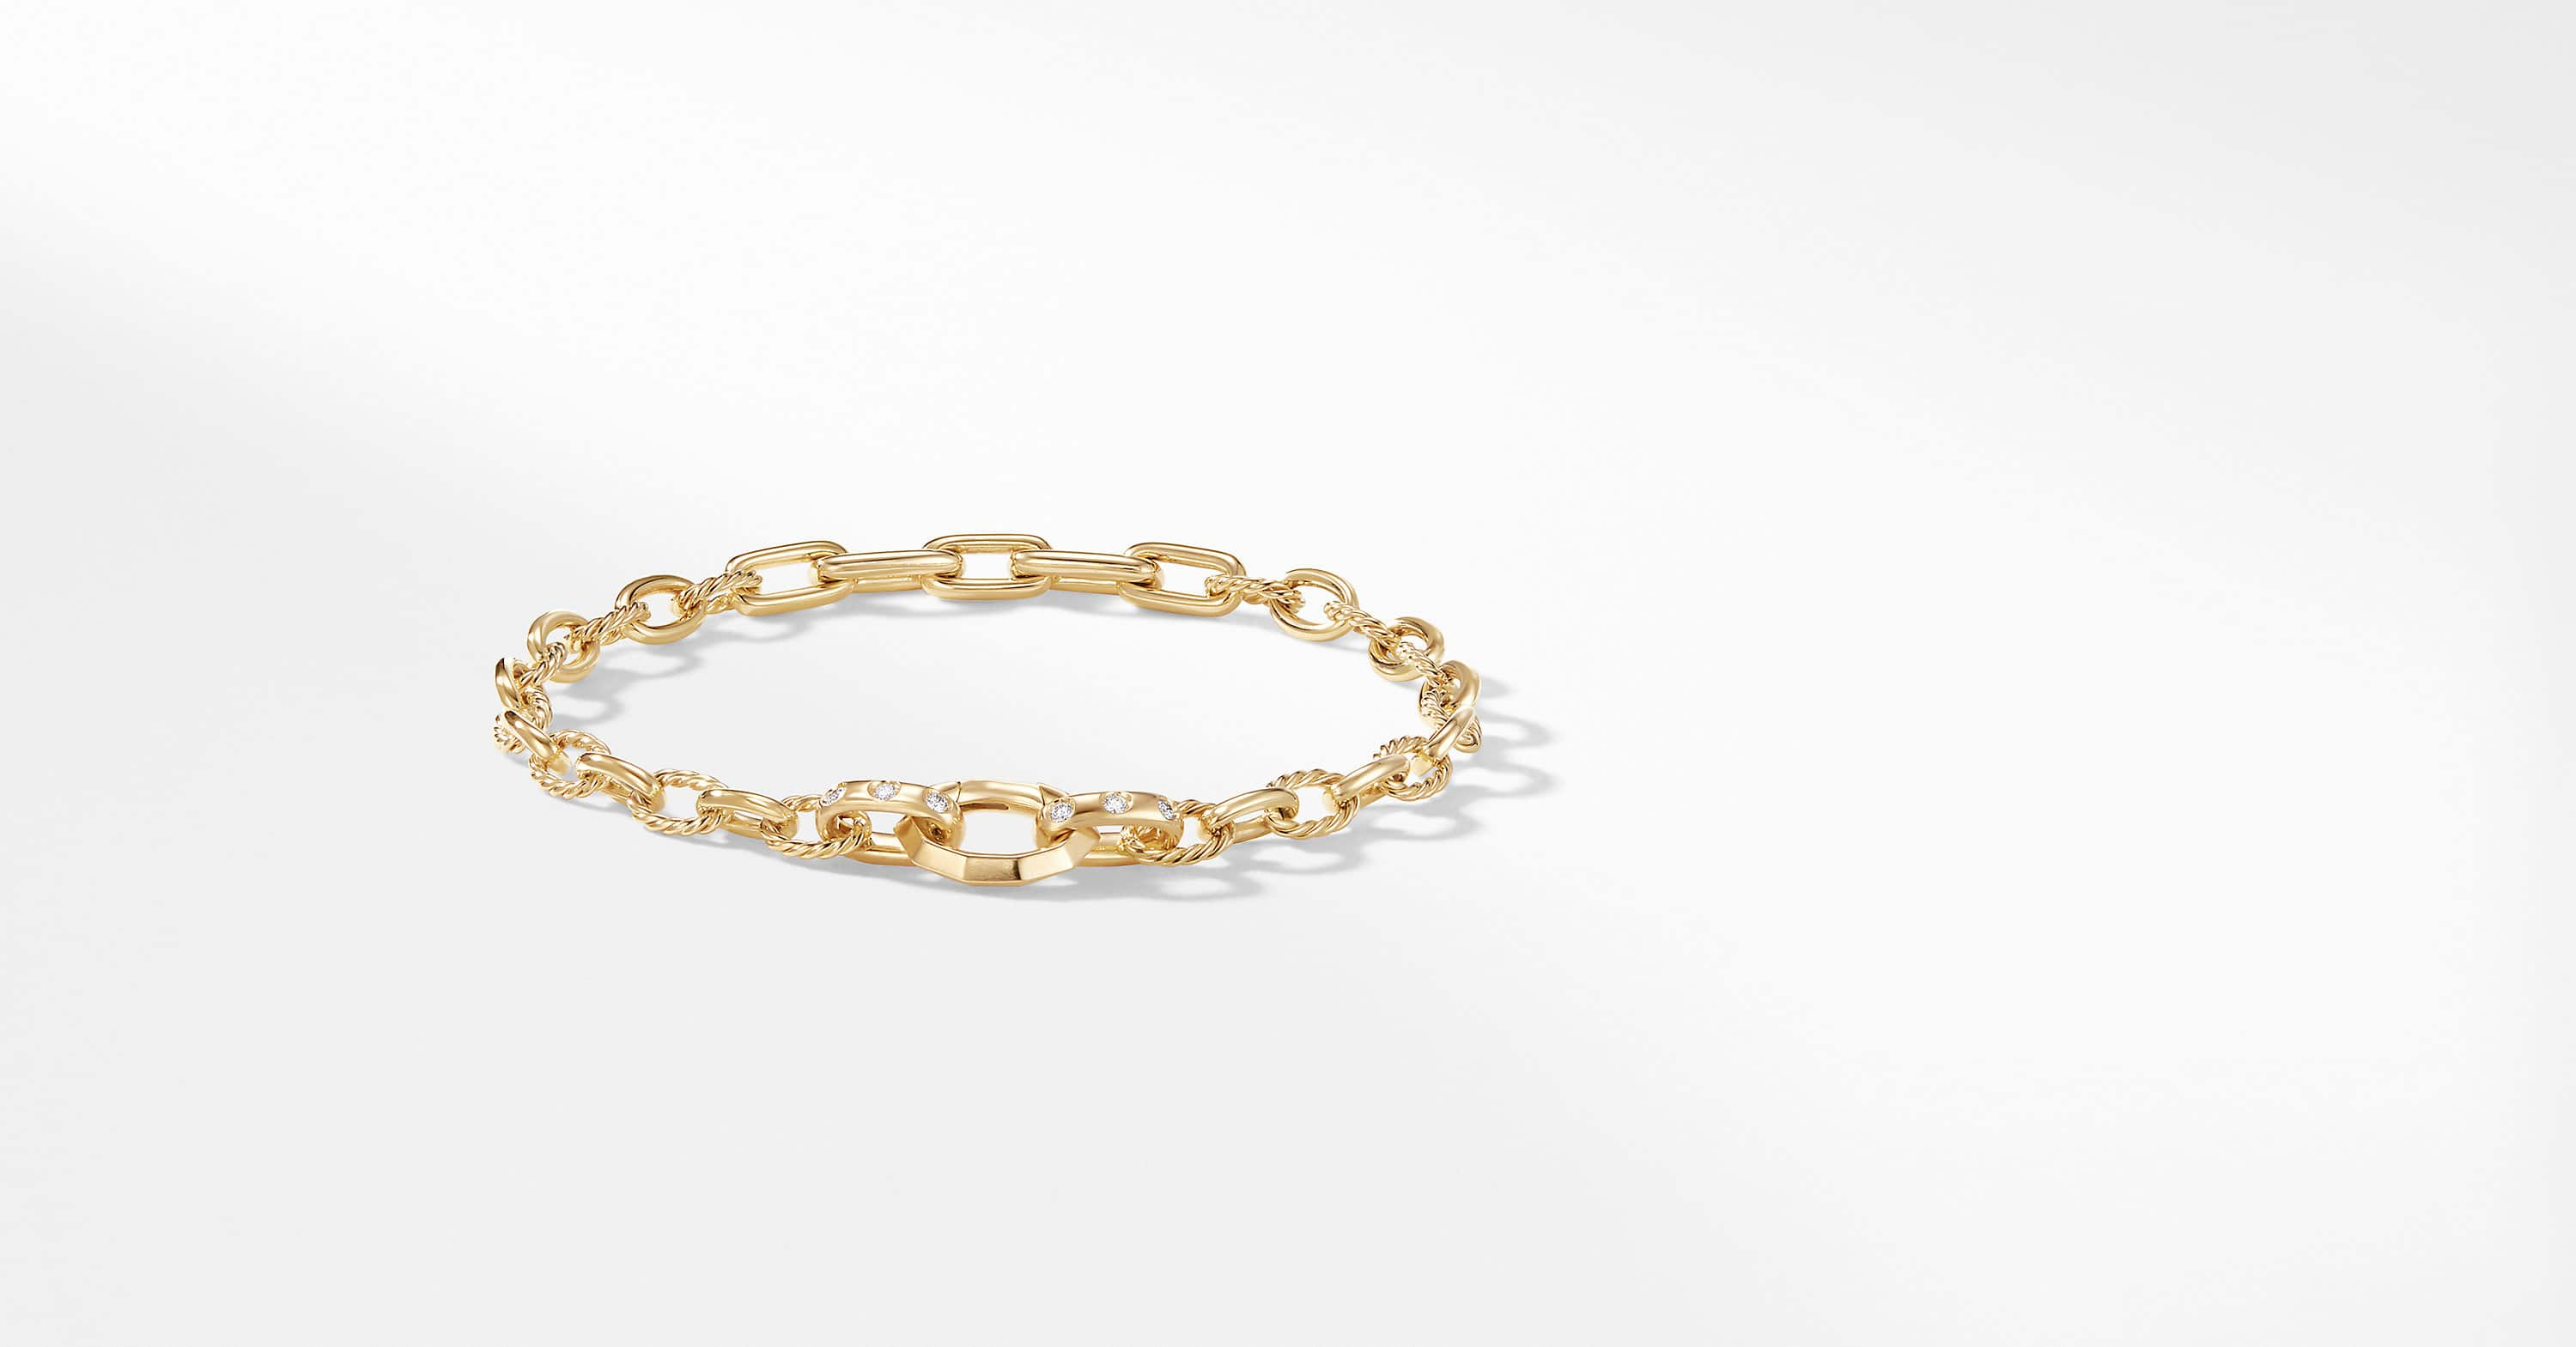 Stax Chain Bracelet with Diamonds in 18K Gold